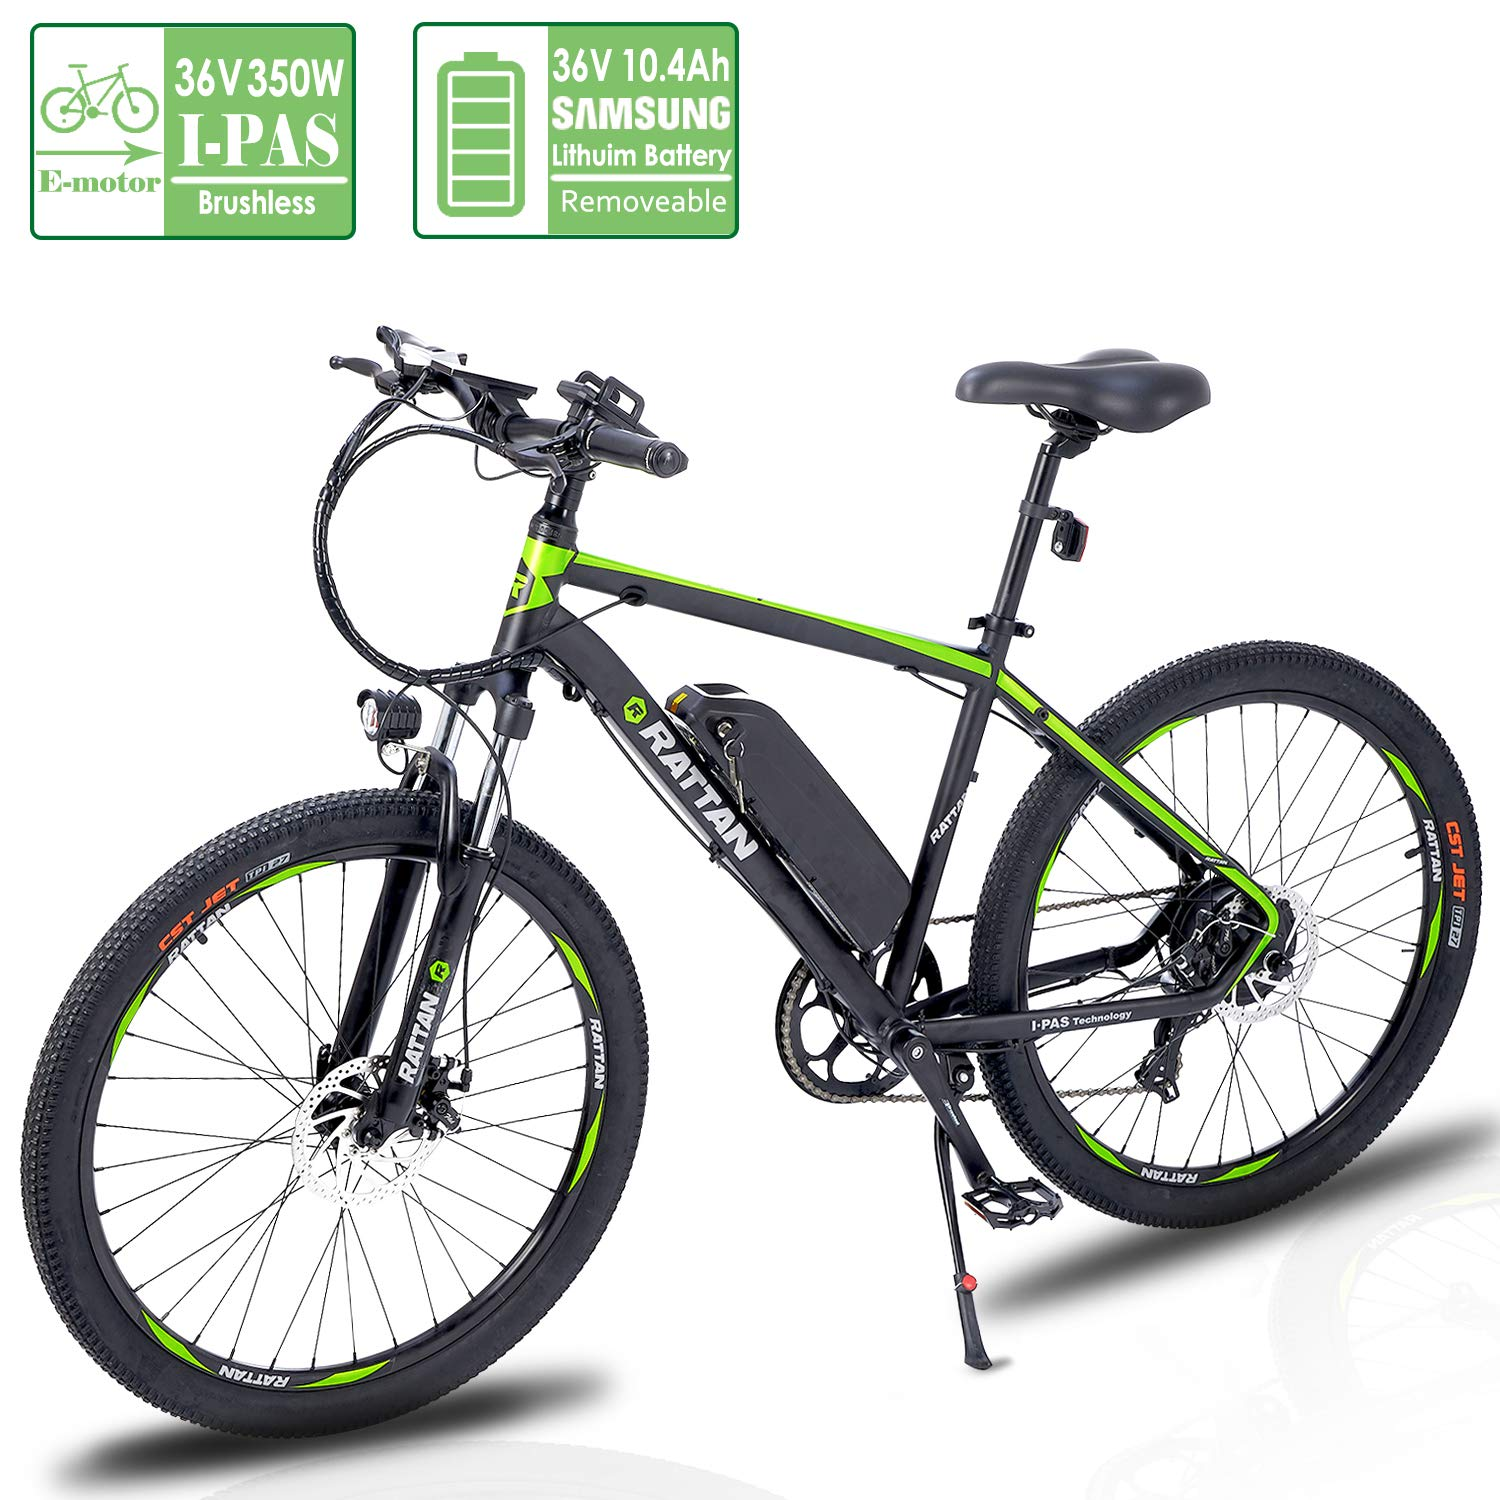 Reibok Ebike IPAS New Technology Electric Bicycle 26 inch Rattan 350W IPAS Motor 7 Speed Electric Mountain Bike E-Bike 36V 10.4Ah Lithium Battery Electric Bike Adult Assisted Ebike